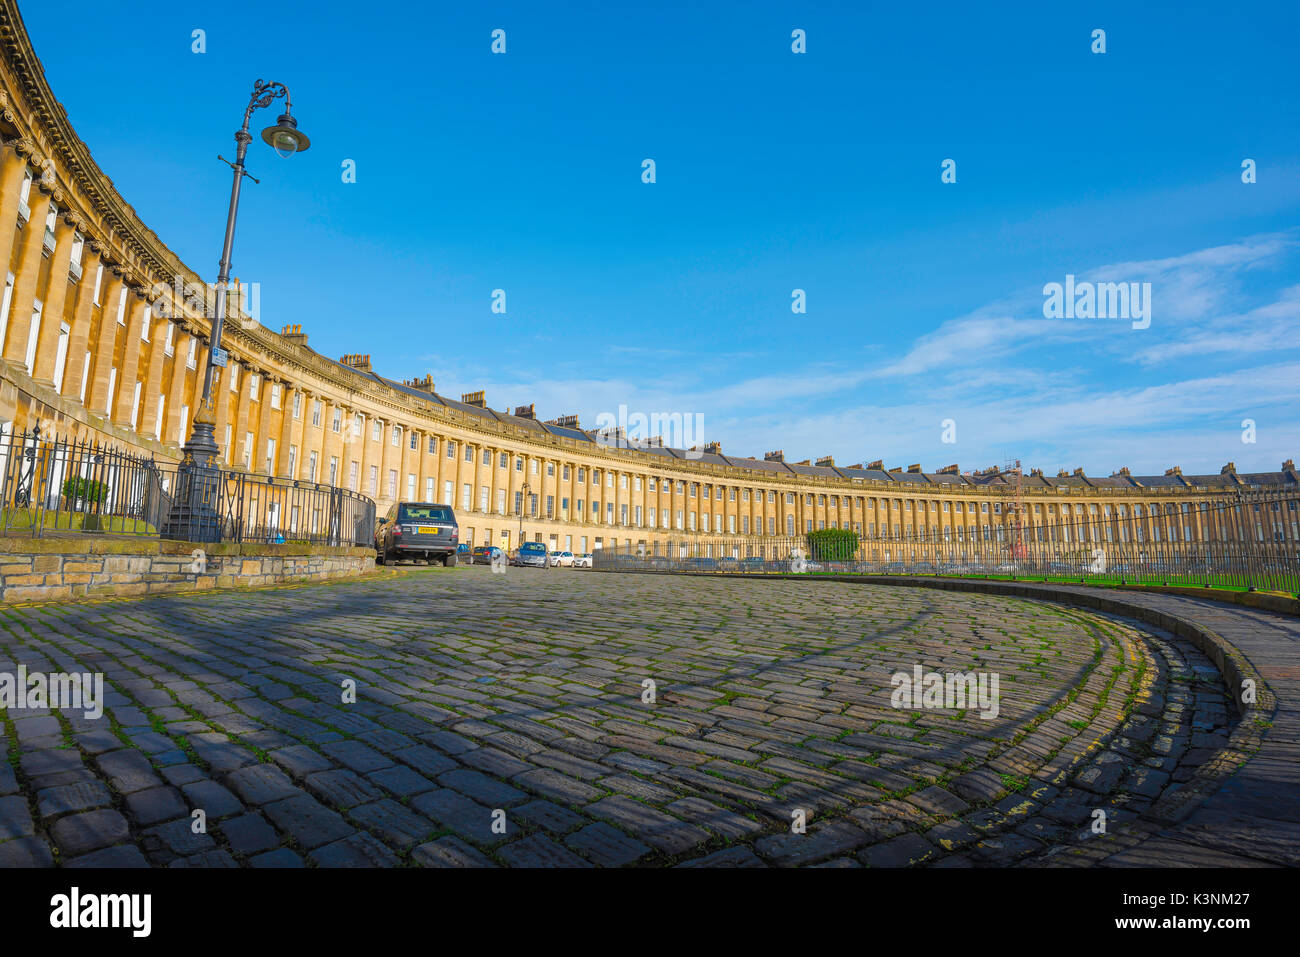 Bath Royal Crescent UK, view of the Royal Crescent - a row of 30 Georgian terraced houses laid out in a sweeping Stock Photo